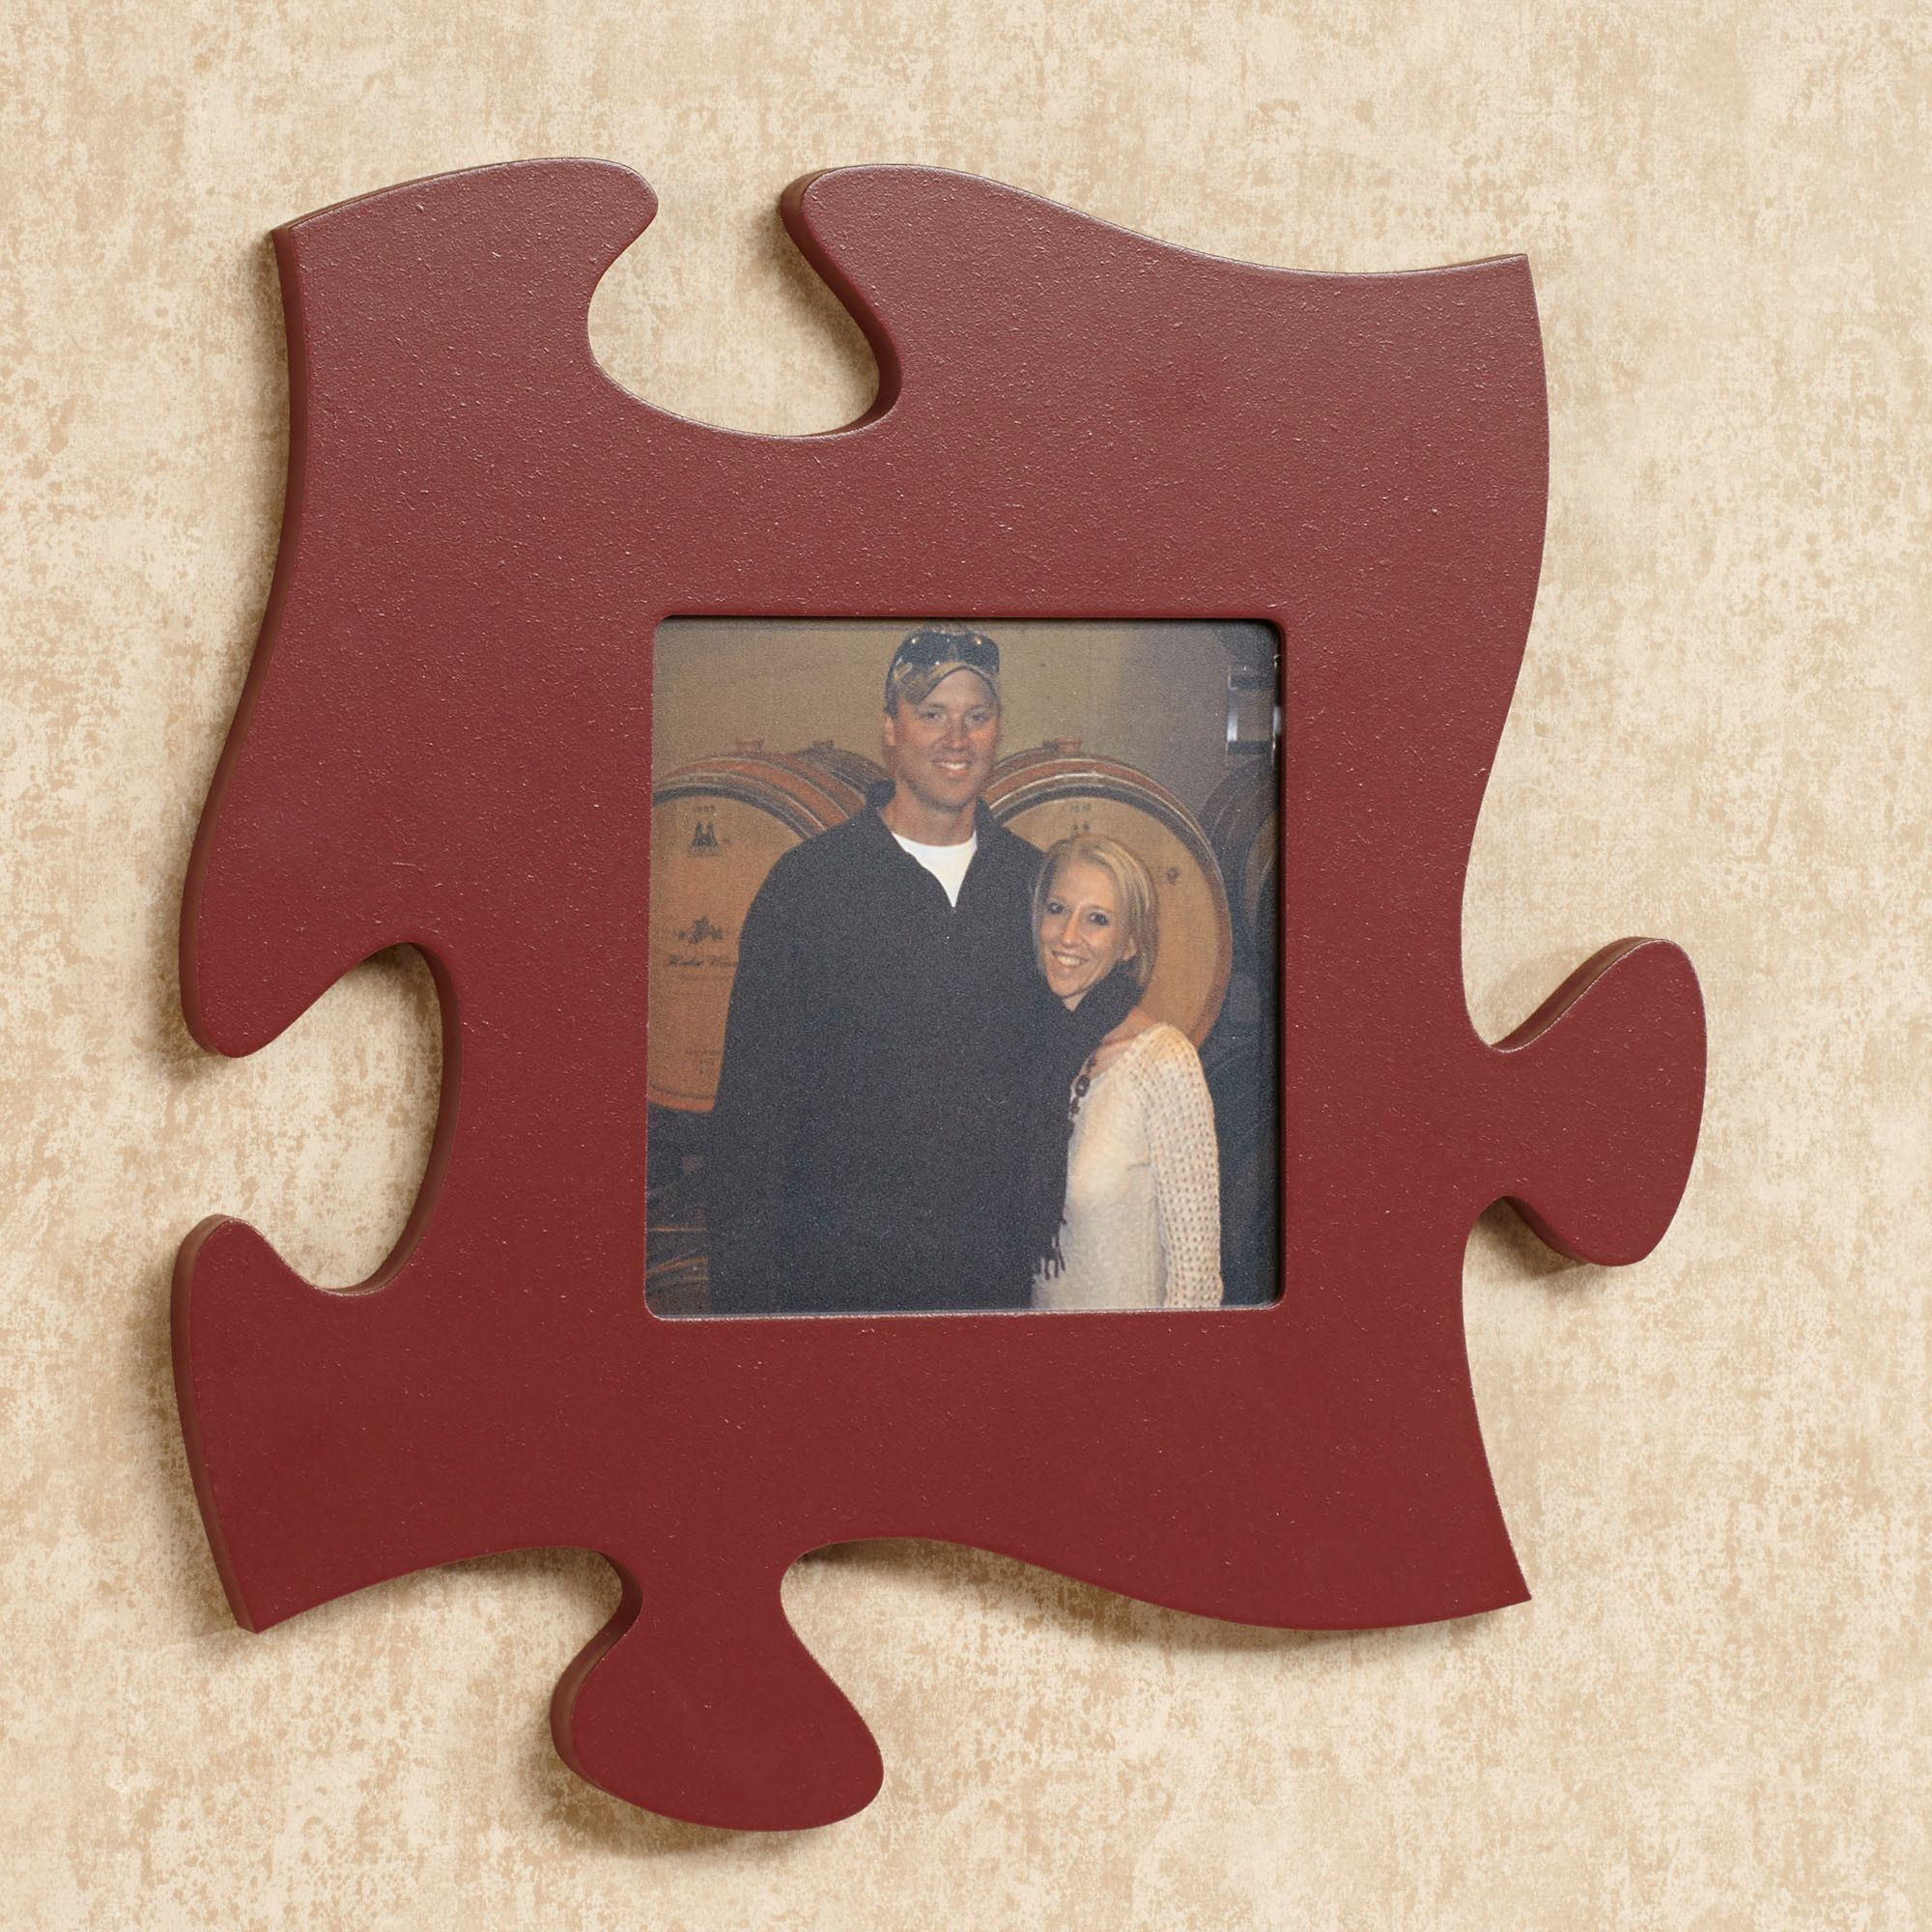 Puzzle Piece Photo Frame Burgundy & Every Family Photo Frame Puzzle Piece Wall Art